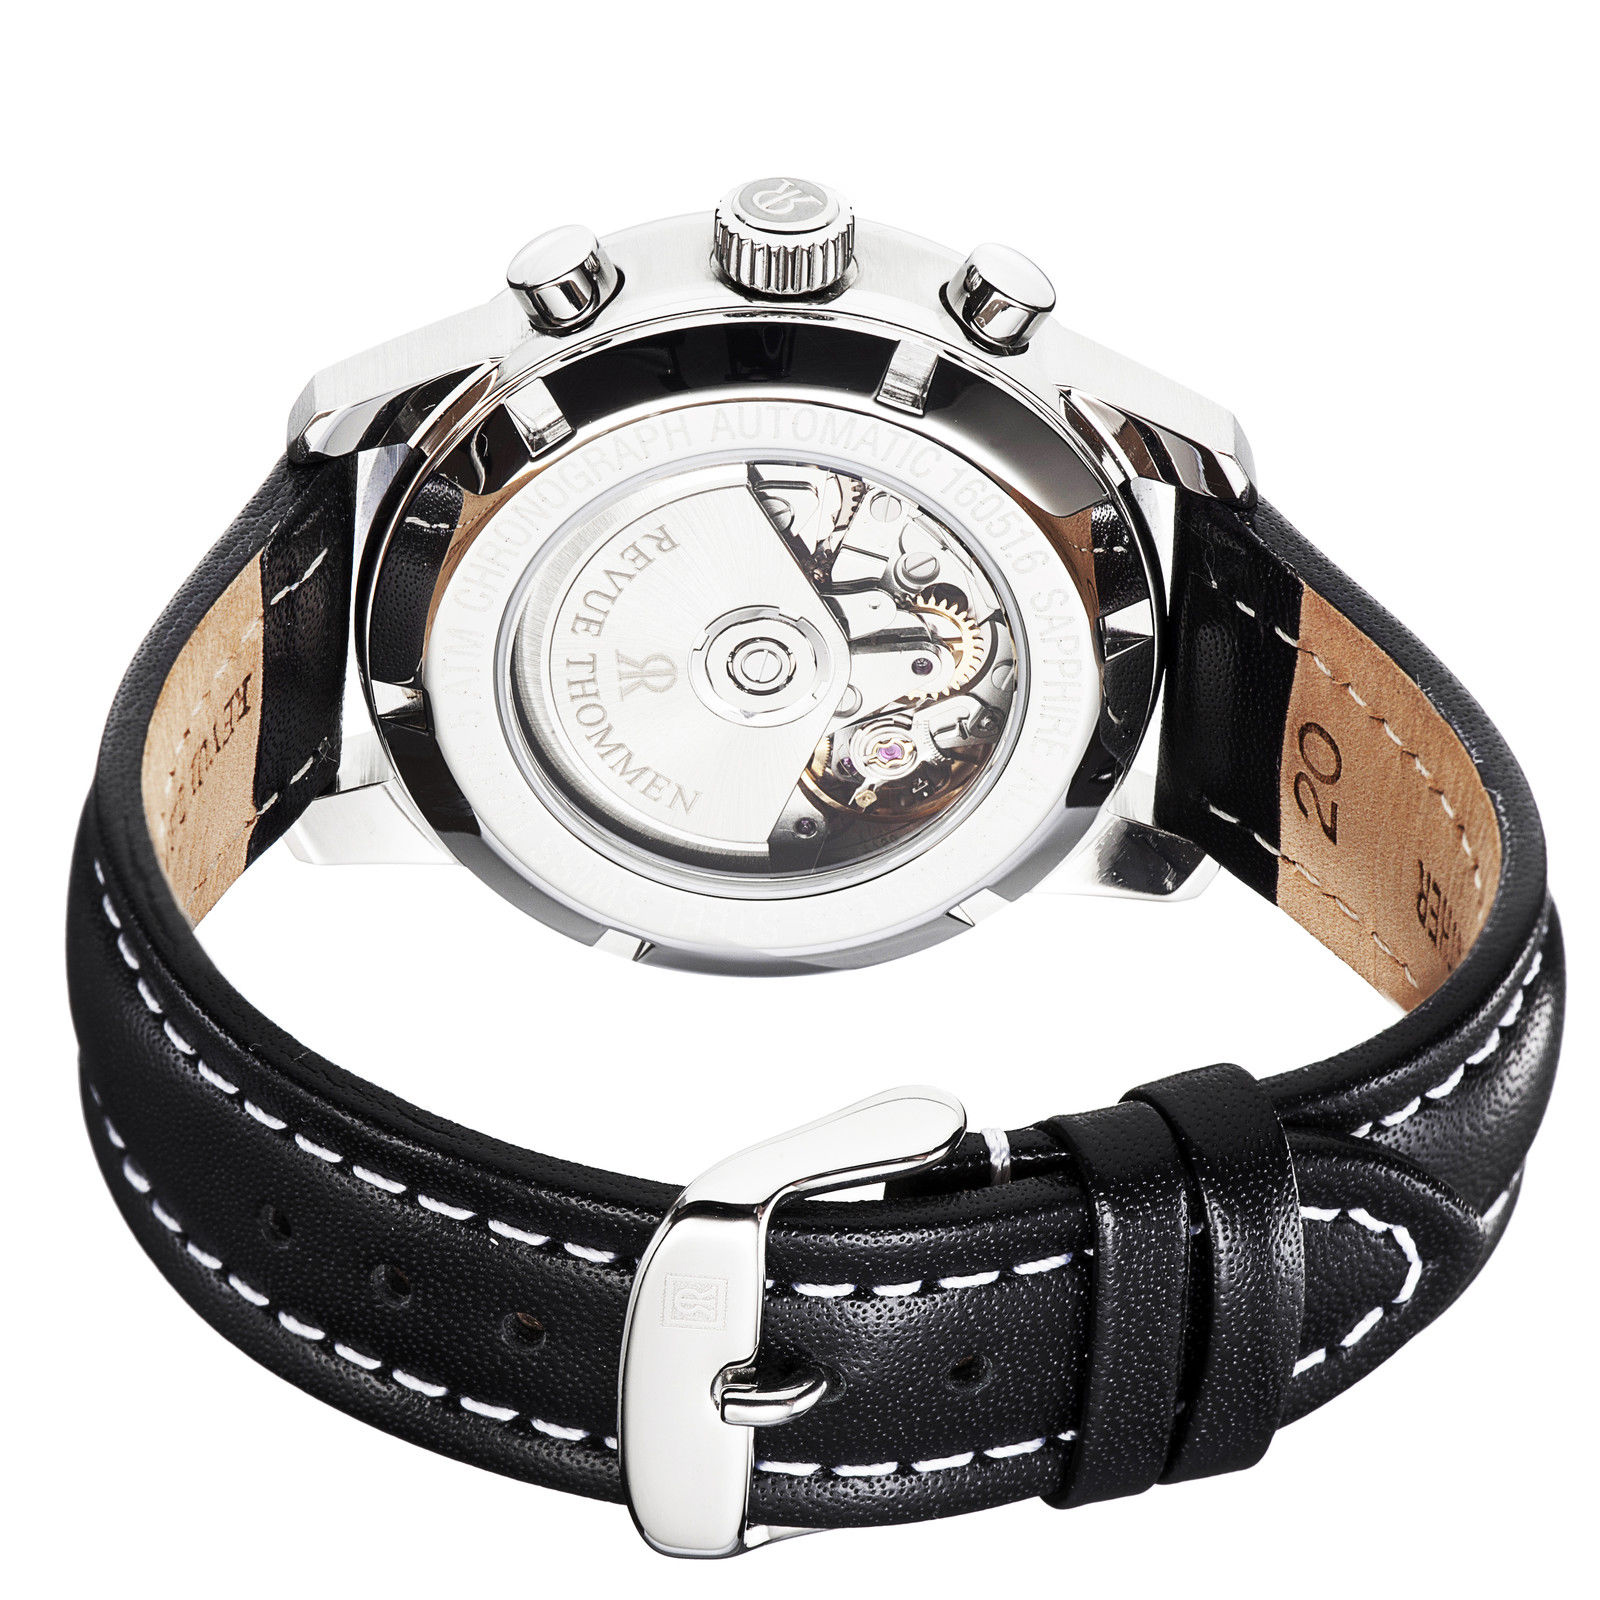 Revue Thommen Airspeed Men's Watch Model 16051.6537 Thumbnail 2